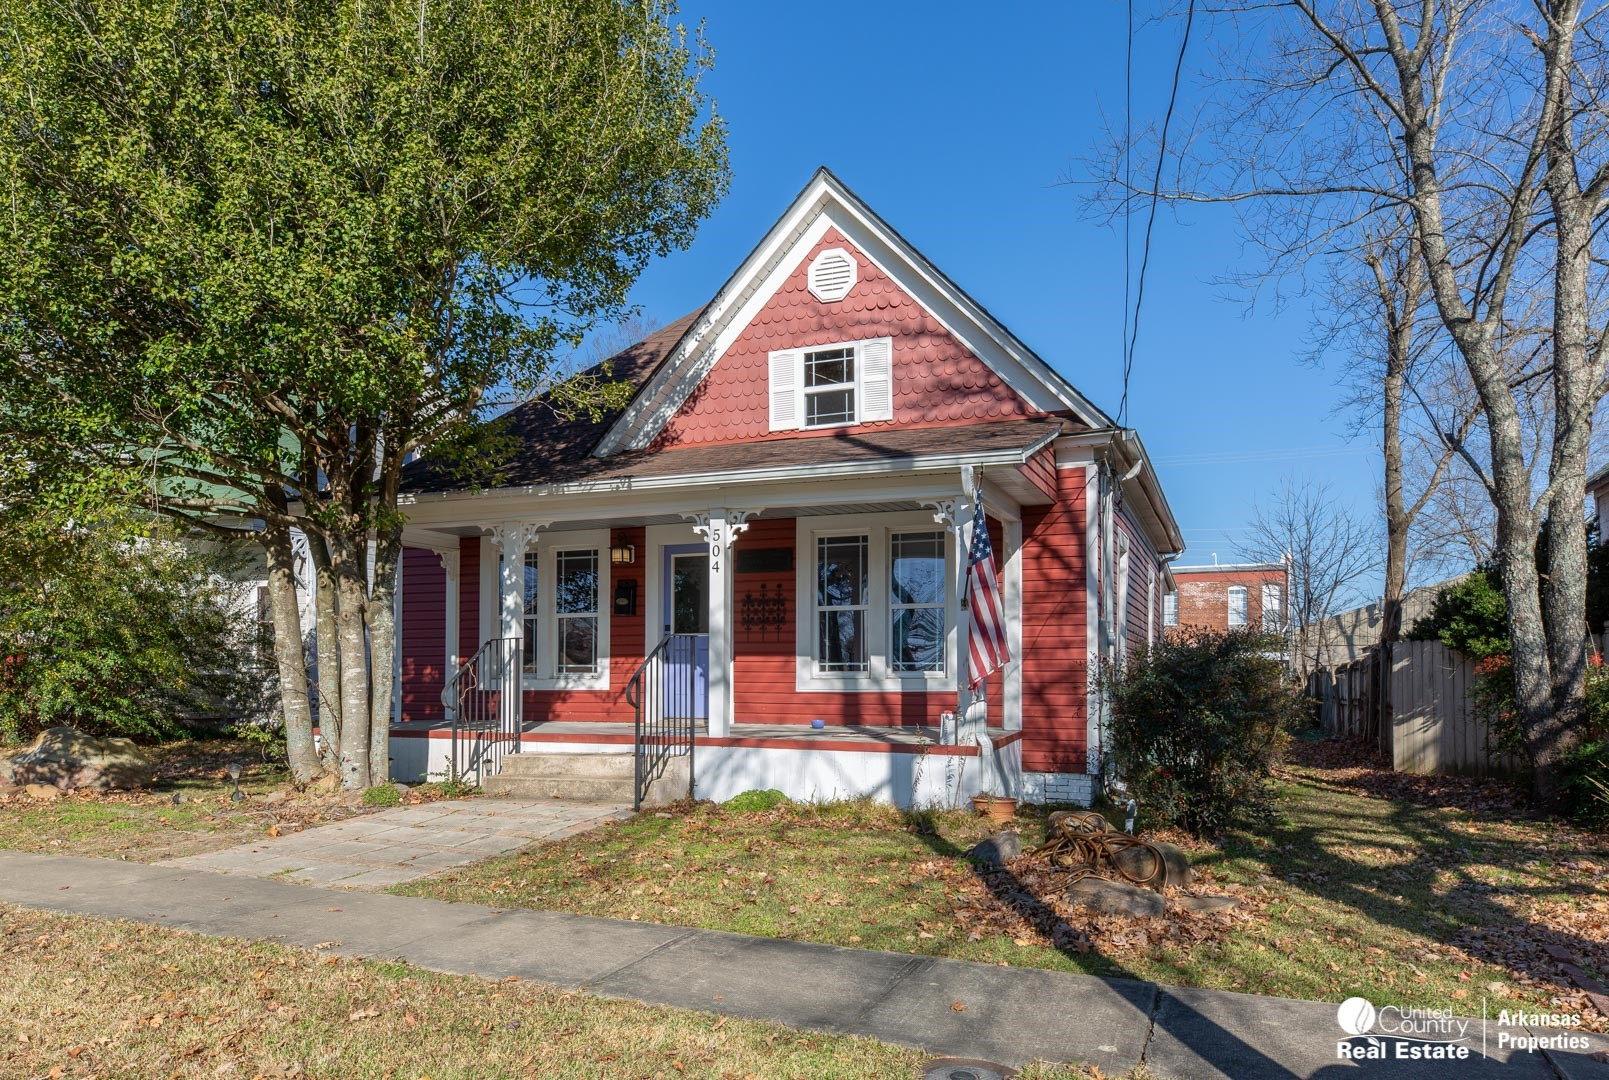 Restored Victorian Cottage by Janssen Park in Mena, Arkansas